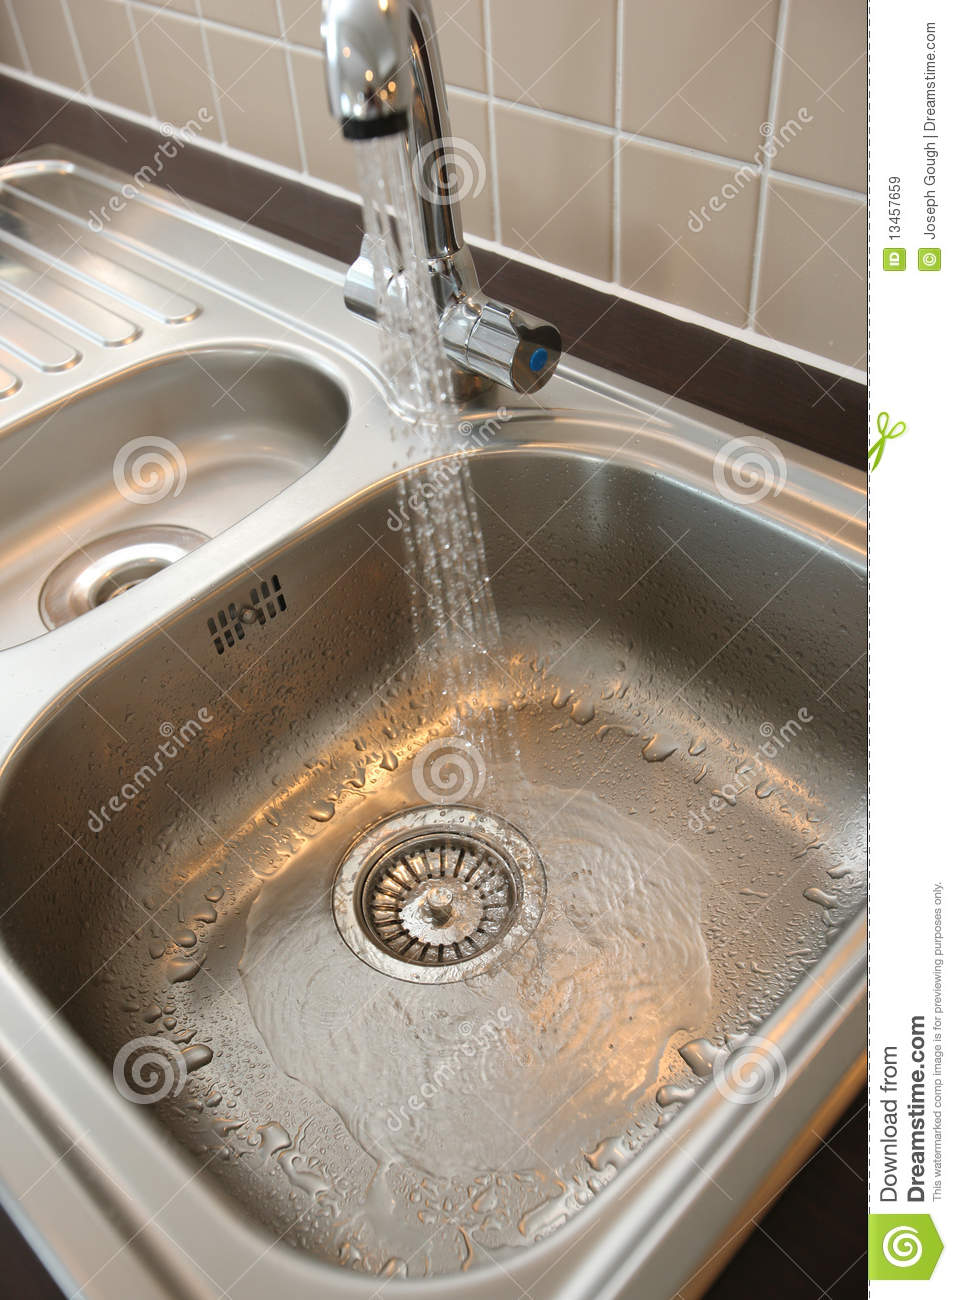 Kitchen Sink With Running Water Royalty Free Stock Images ... Sink With Water